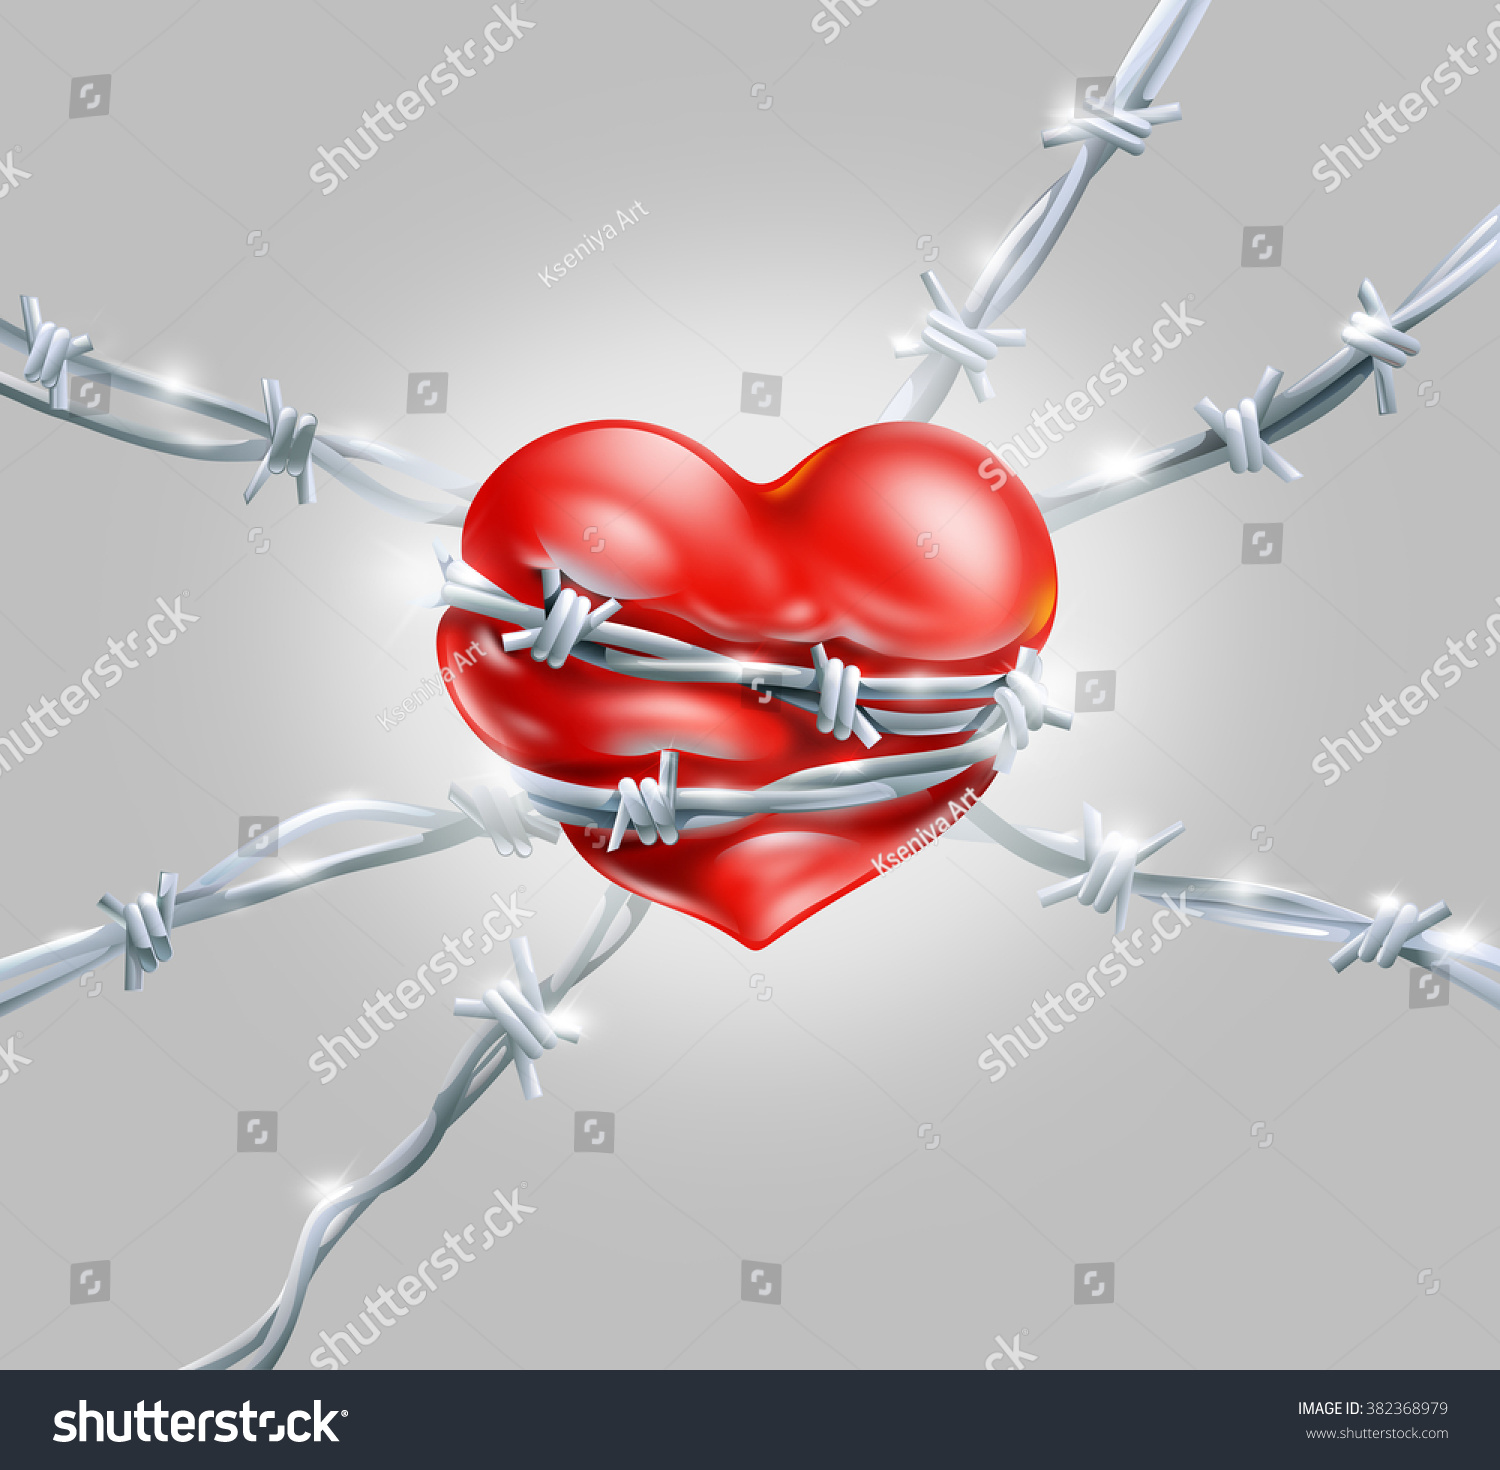 Red Heart Wrap Enclosed Barbed Metal Stock Illustration 382368979 ...